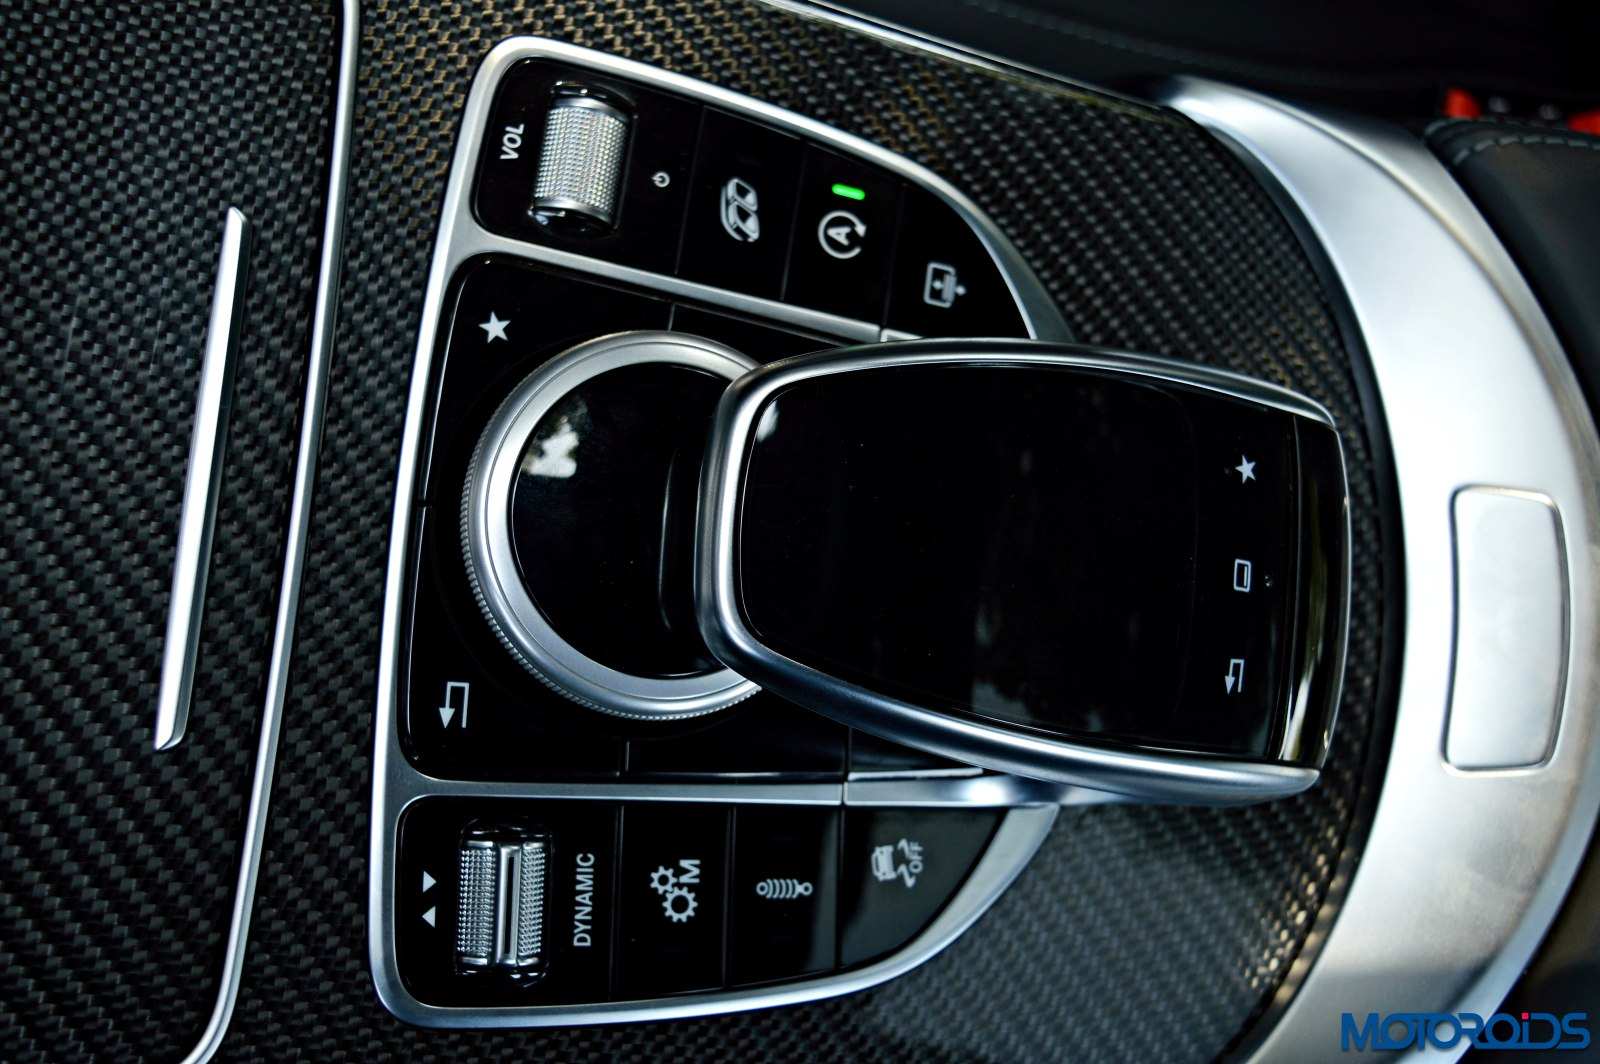 Mercedes-AMG C 63 S touchpad and COMAND center controls(175)